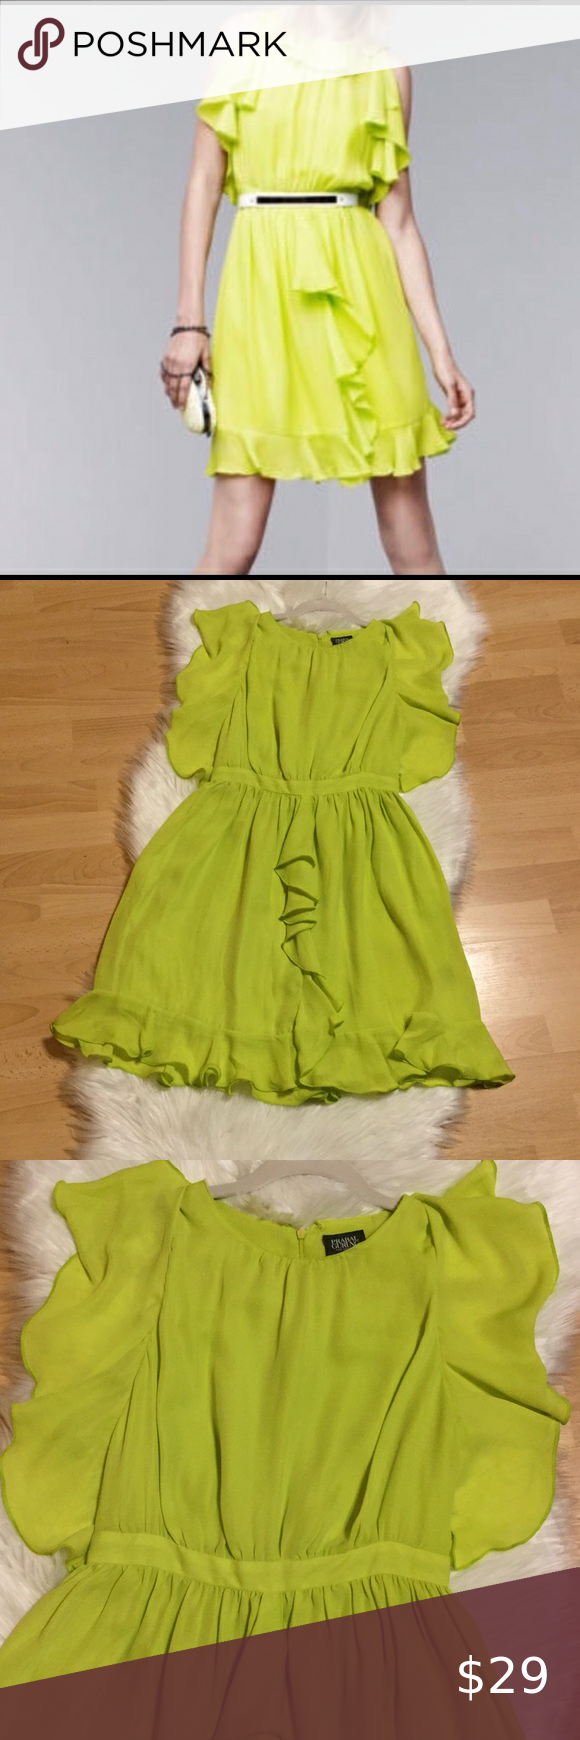 Praball Gurung For Target Green Dress W Ruffles First Photo Is To Show How The Dress Was Originally As Lace Arou Green Dress Clothes Design Red Ruffle Dress [ 1740 x 580 Pixel ]